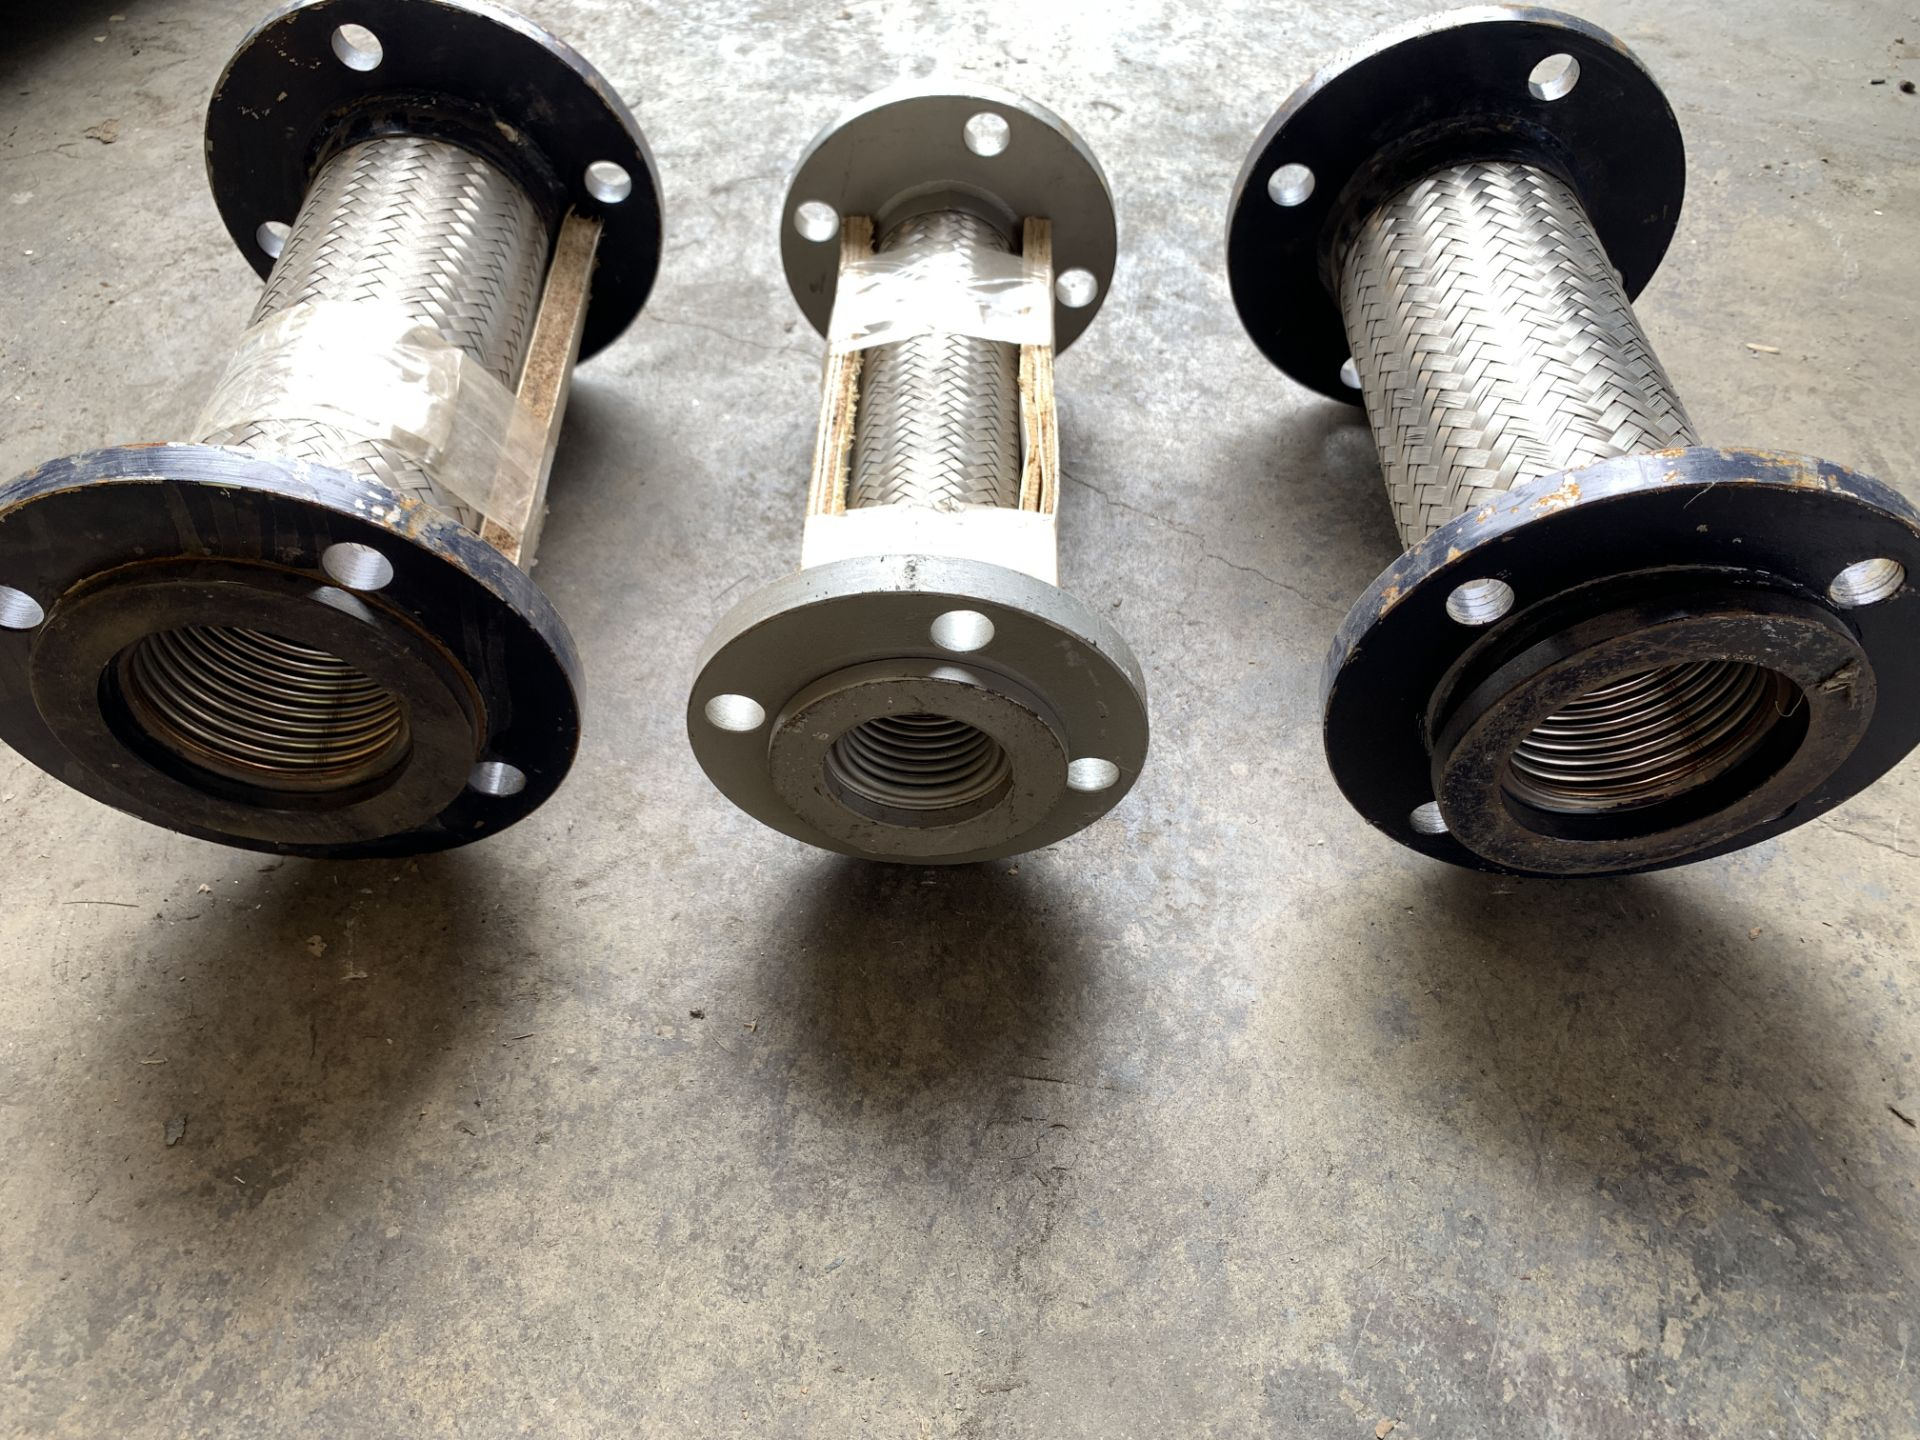 """Lot 202 - 3 Stainless Sttel Flange Flexible Connectors, 12"""", Heavy Duty Industrial, Located in Los Angeles"""